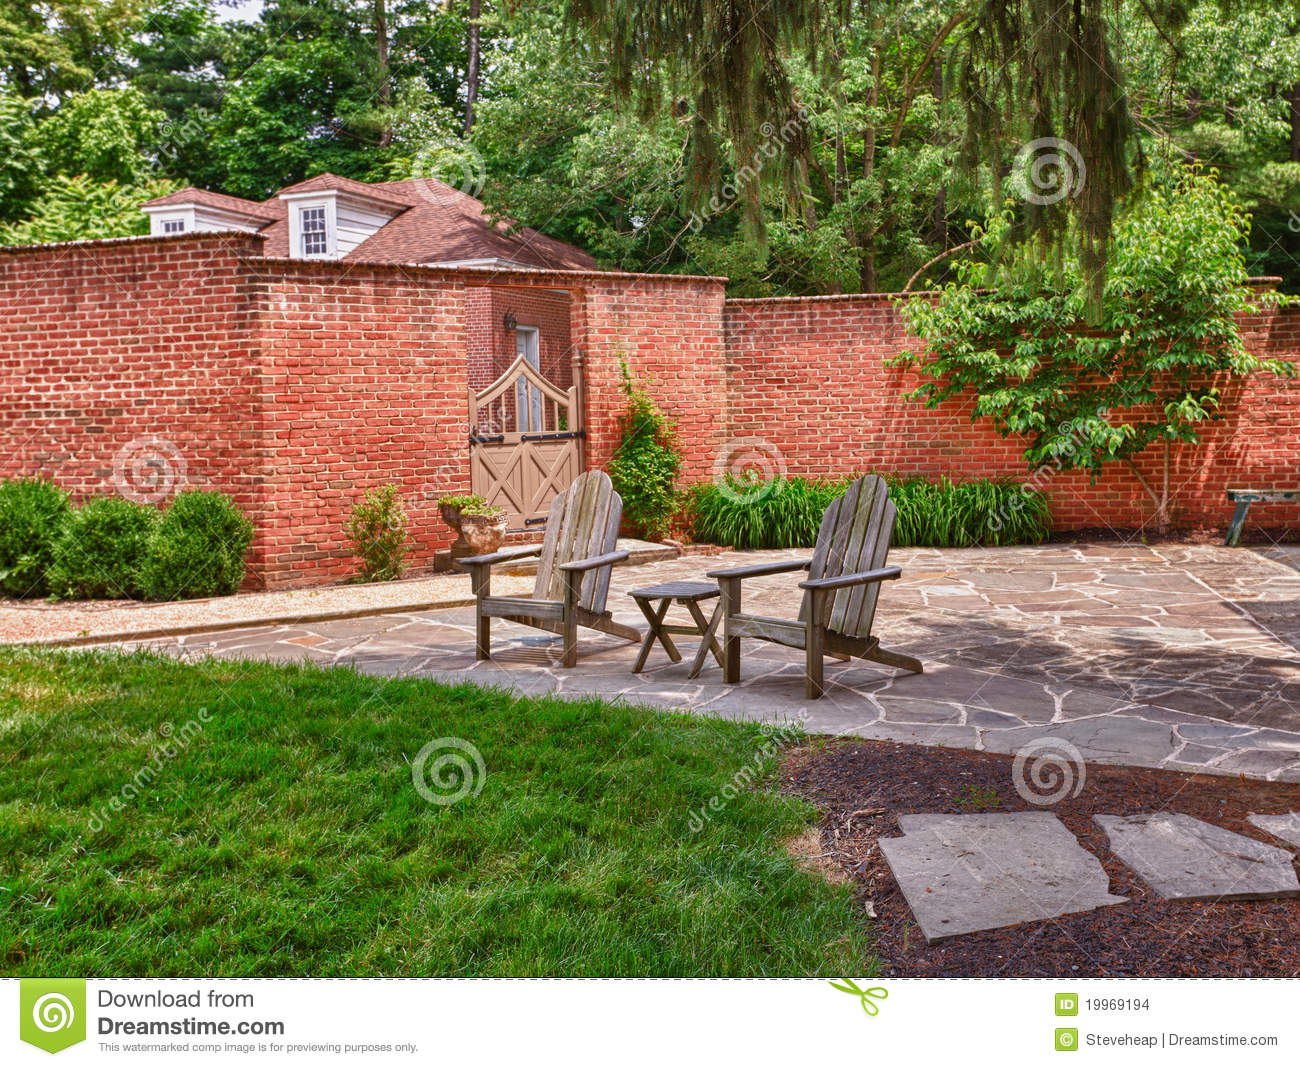 green lawn chairs caravan zero gravity chair cape cod on stone patio stock images - image: 19969194